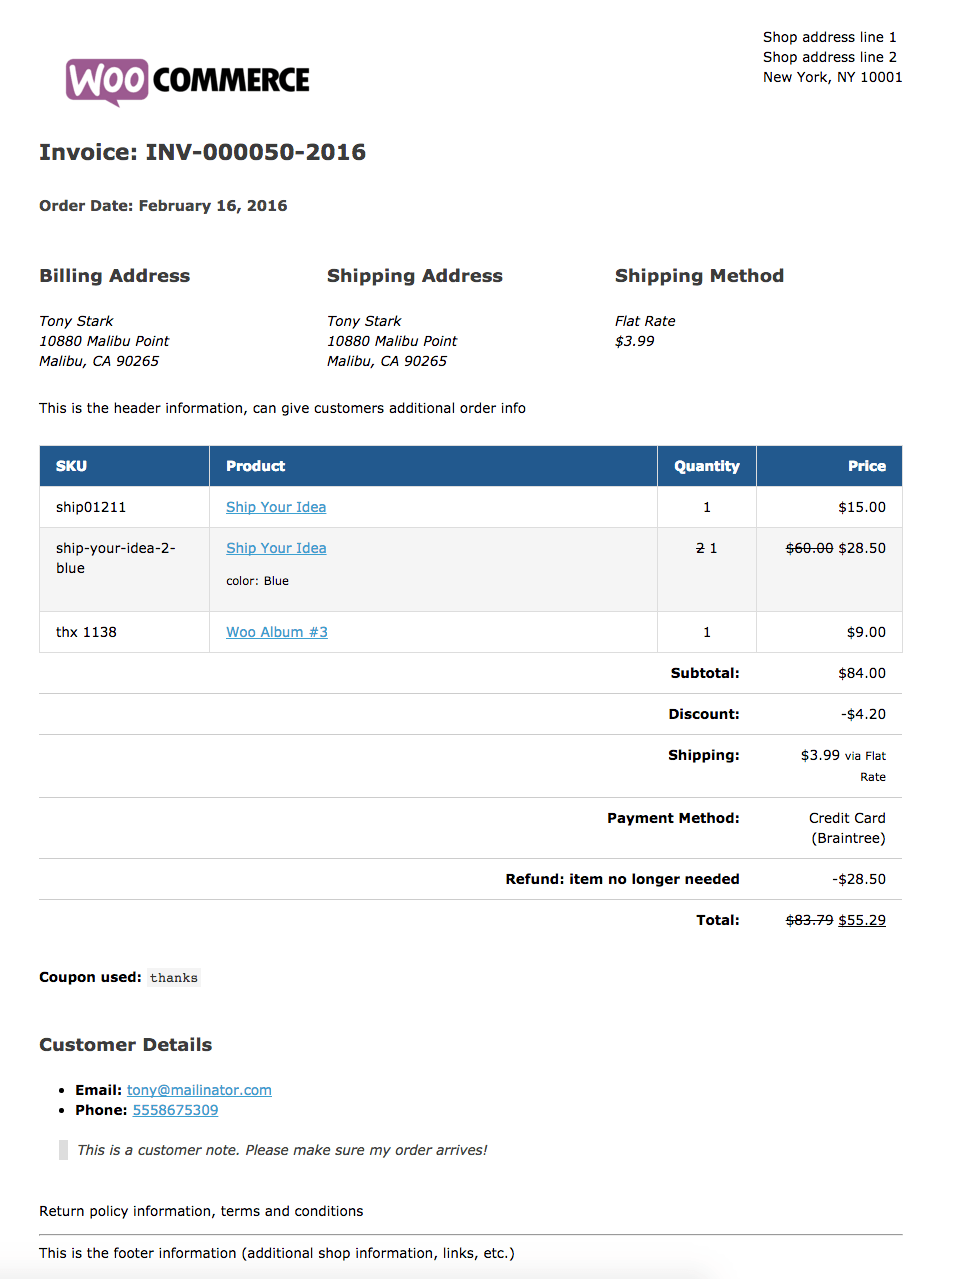 Hucareus  Marvellous Woocommerce Print Invoices Amp Packing Lists  Woocommerce Docs With Engaging Sample Invoice With Beautiful Hospital Invoice Also Real Estate Invoice Template In Addition Chase Invoicing And Factored Invoices As Well As Ms Word Invoice Additionally Cloud Invoice From Docswoocommercecom With Hucareus  Engaging Woocommerce Print Invoices Amp Packing Lists  Woocommerce Docs With Beautiful Sample Invoice And Marvellous Hospital Invoice Also Real Estate Invoice Template In Addition Chase Invoicing From Docswoocommercecom